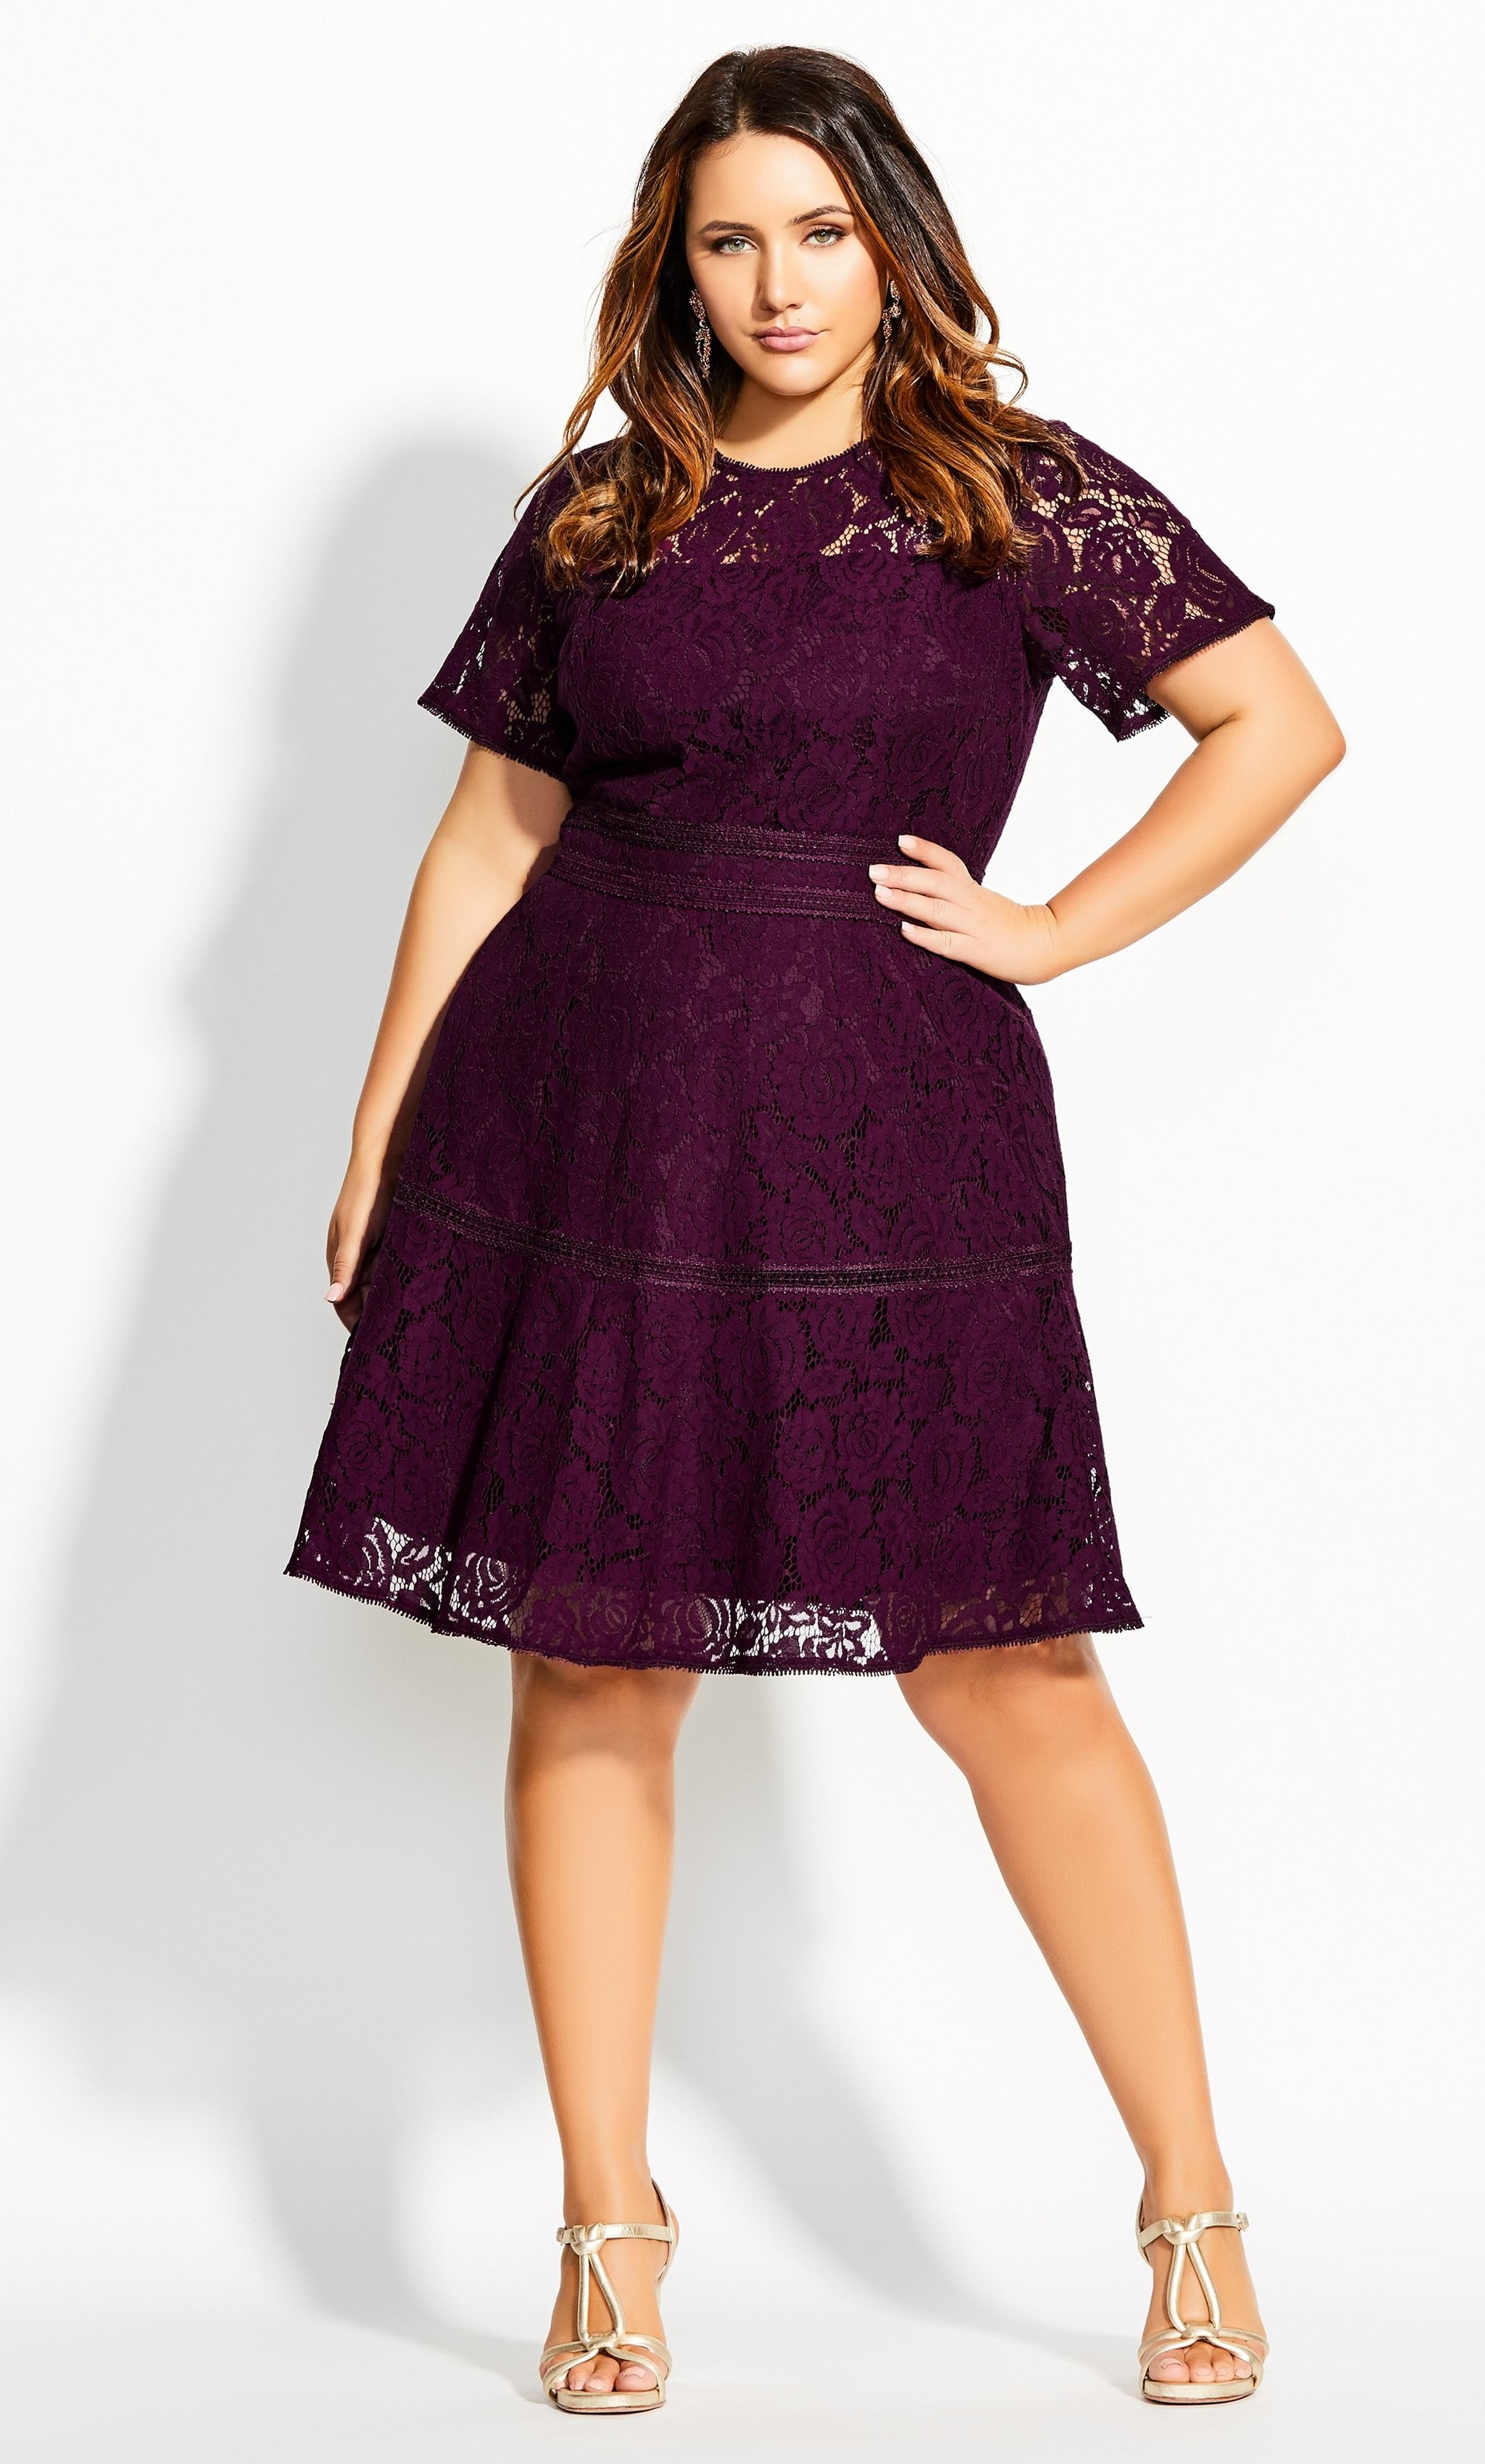 Lace Ravish Dress - mulberry 8